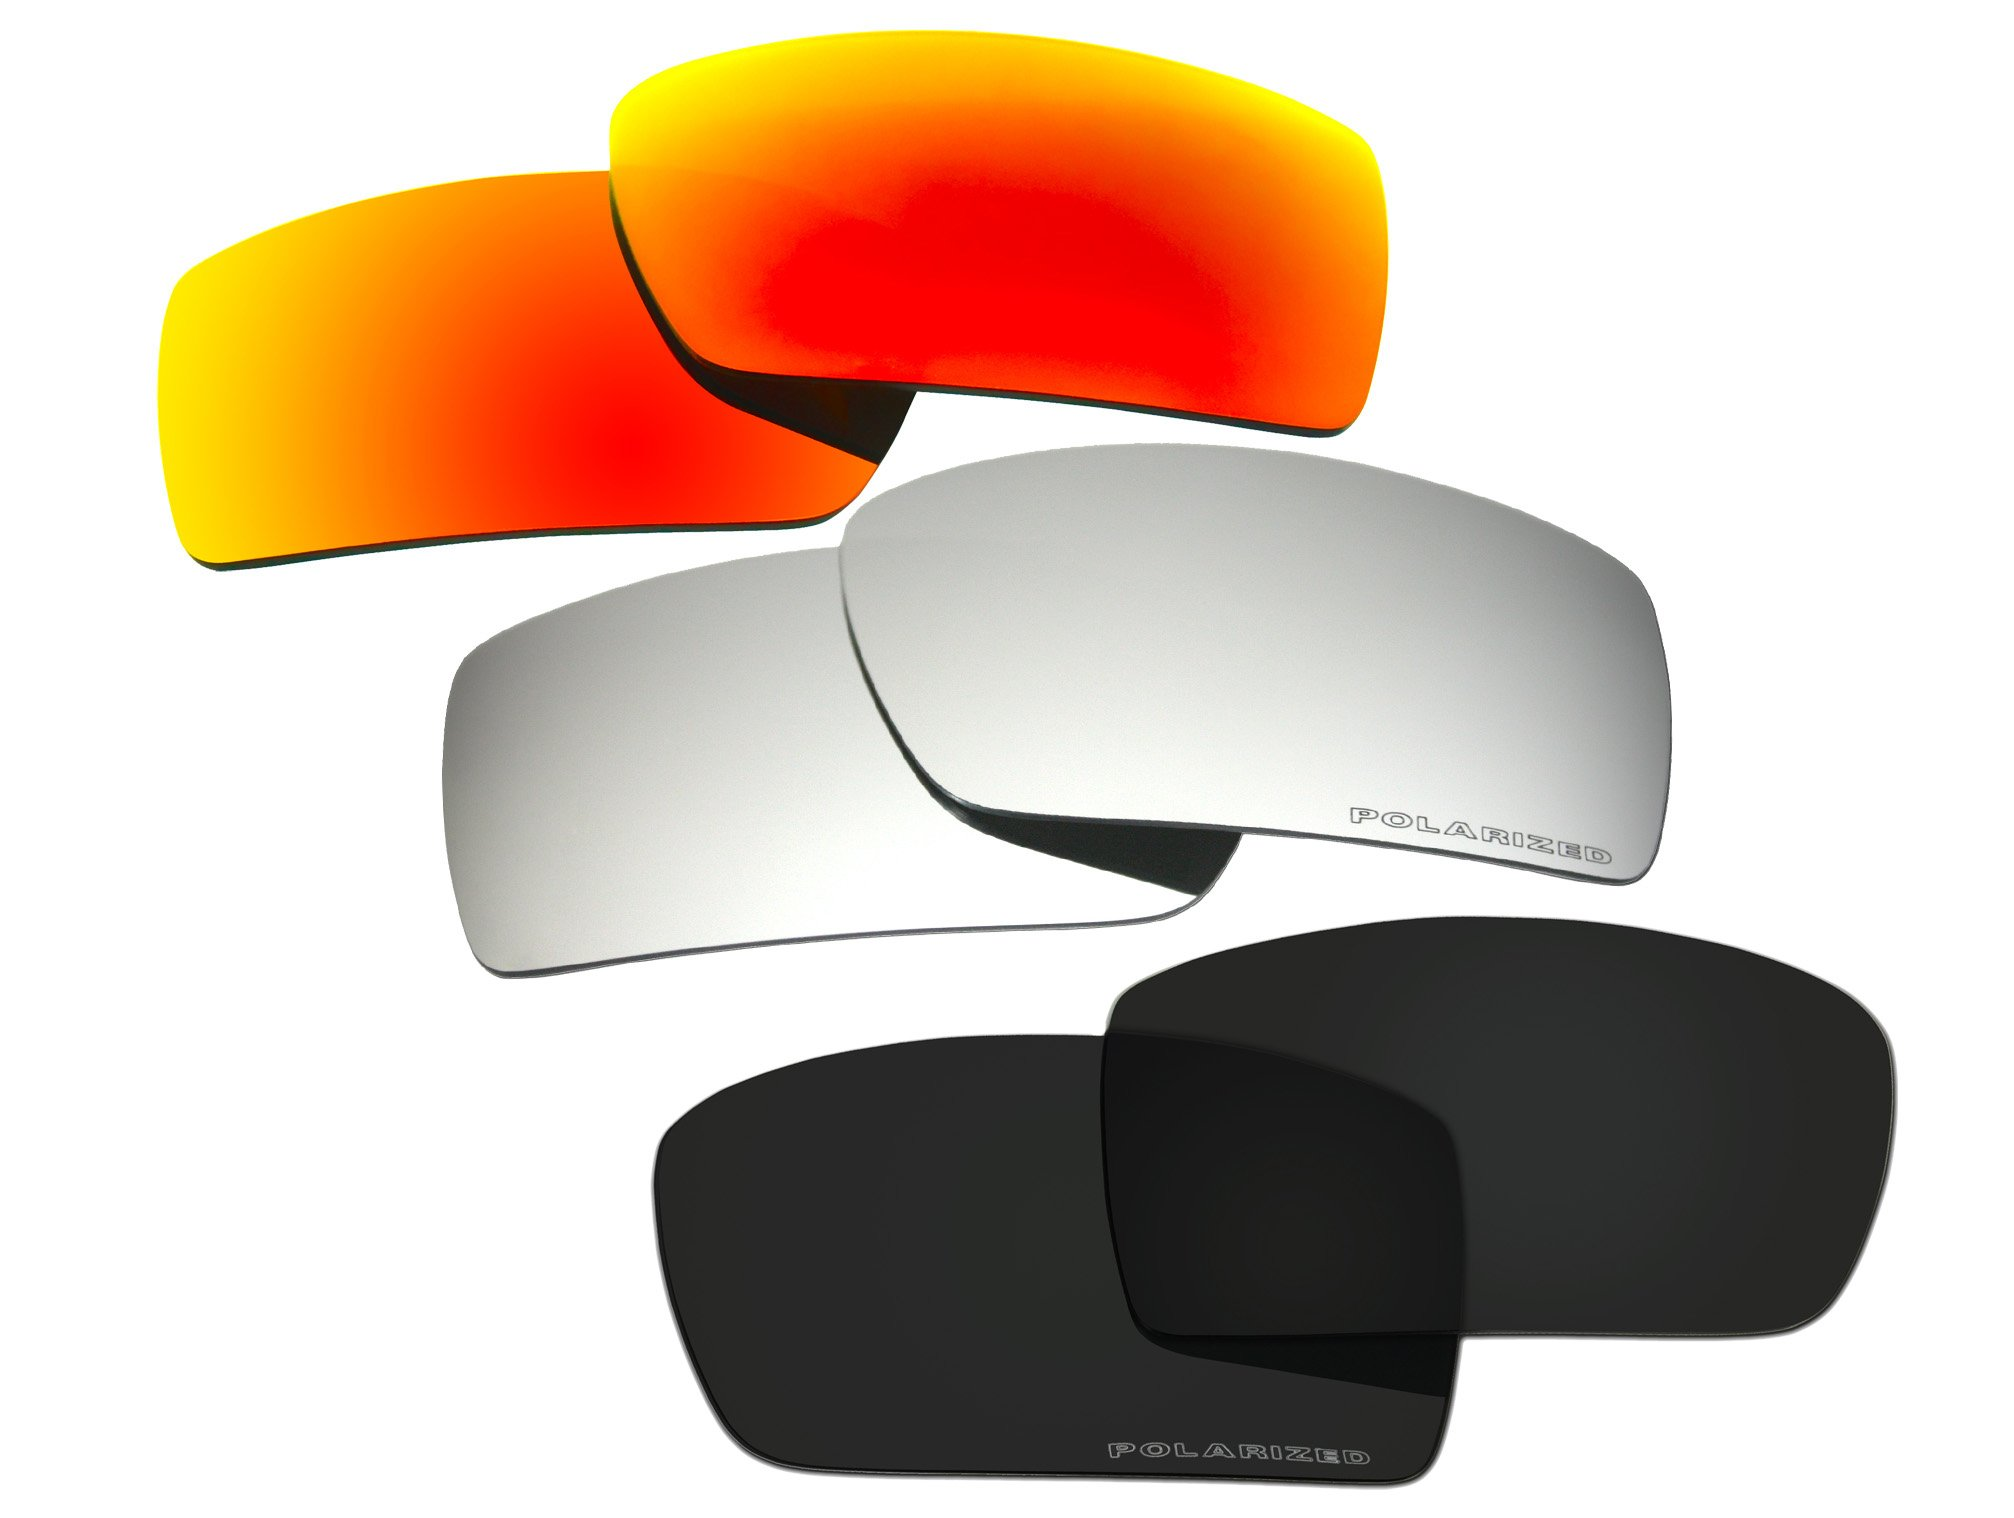 3 Pairs Polarized Replacement Sunglasses Lenses for Oakley Gascan with Excellent UV Protection by C.D